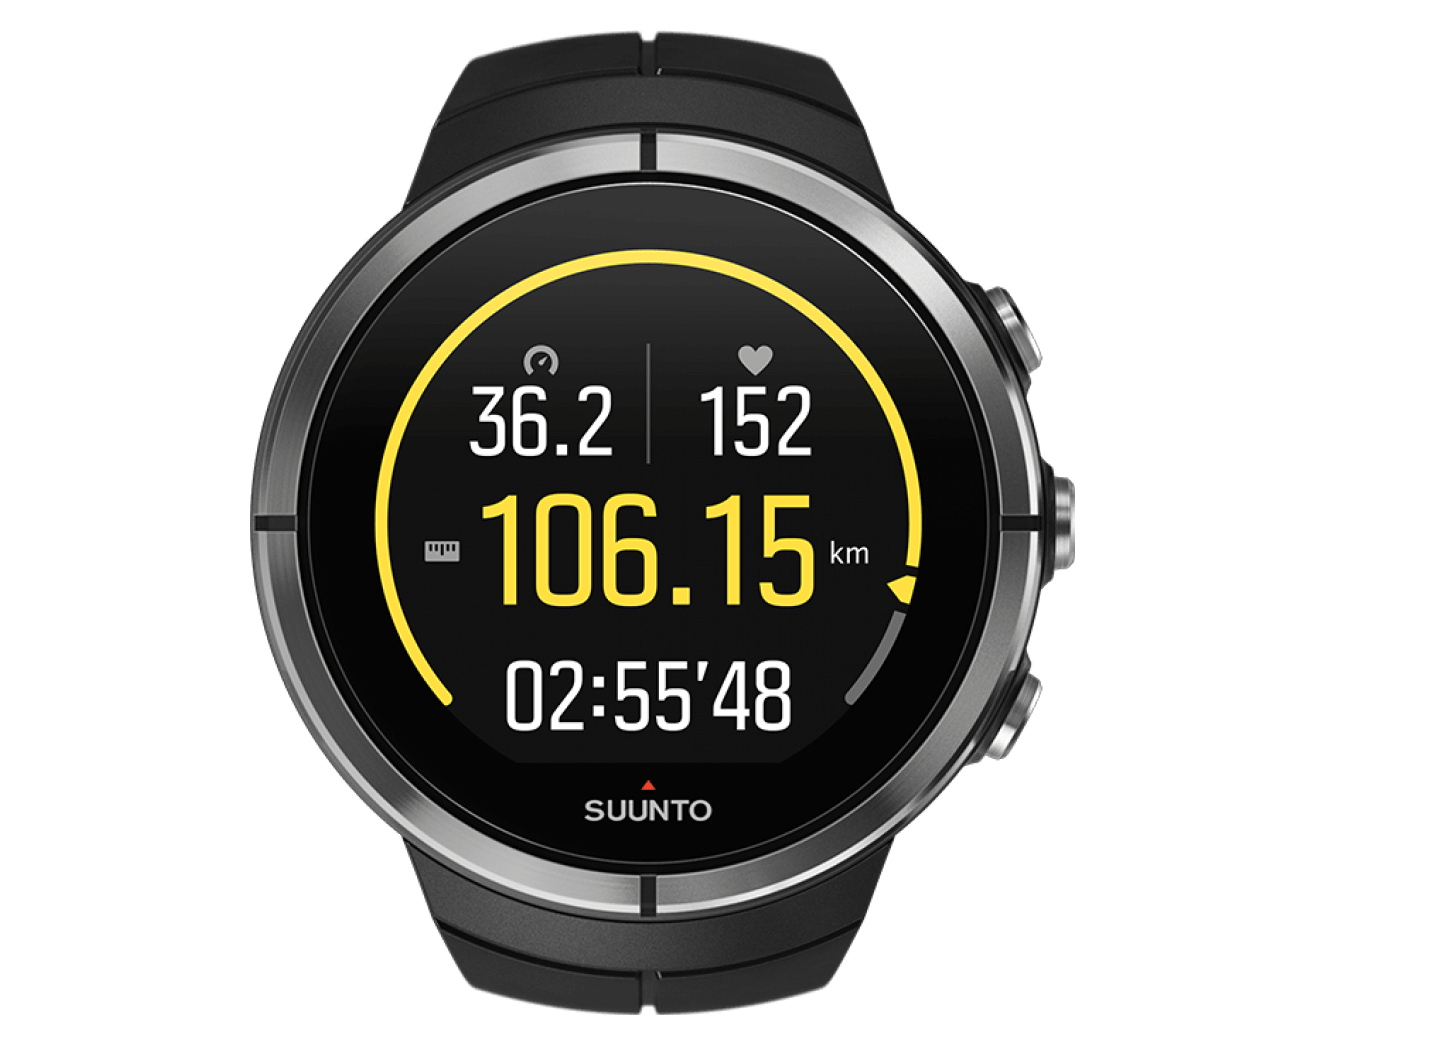 suunto spartan ultra hr outdooruhr schwarz im online shop von keller sports kaufen. Black Bedroom Furniture Sets. Home Design Ideas